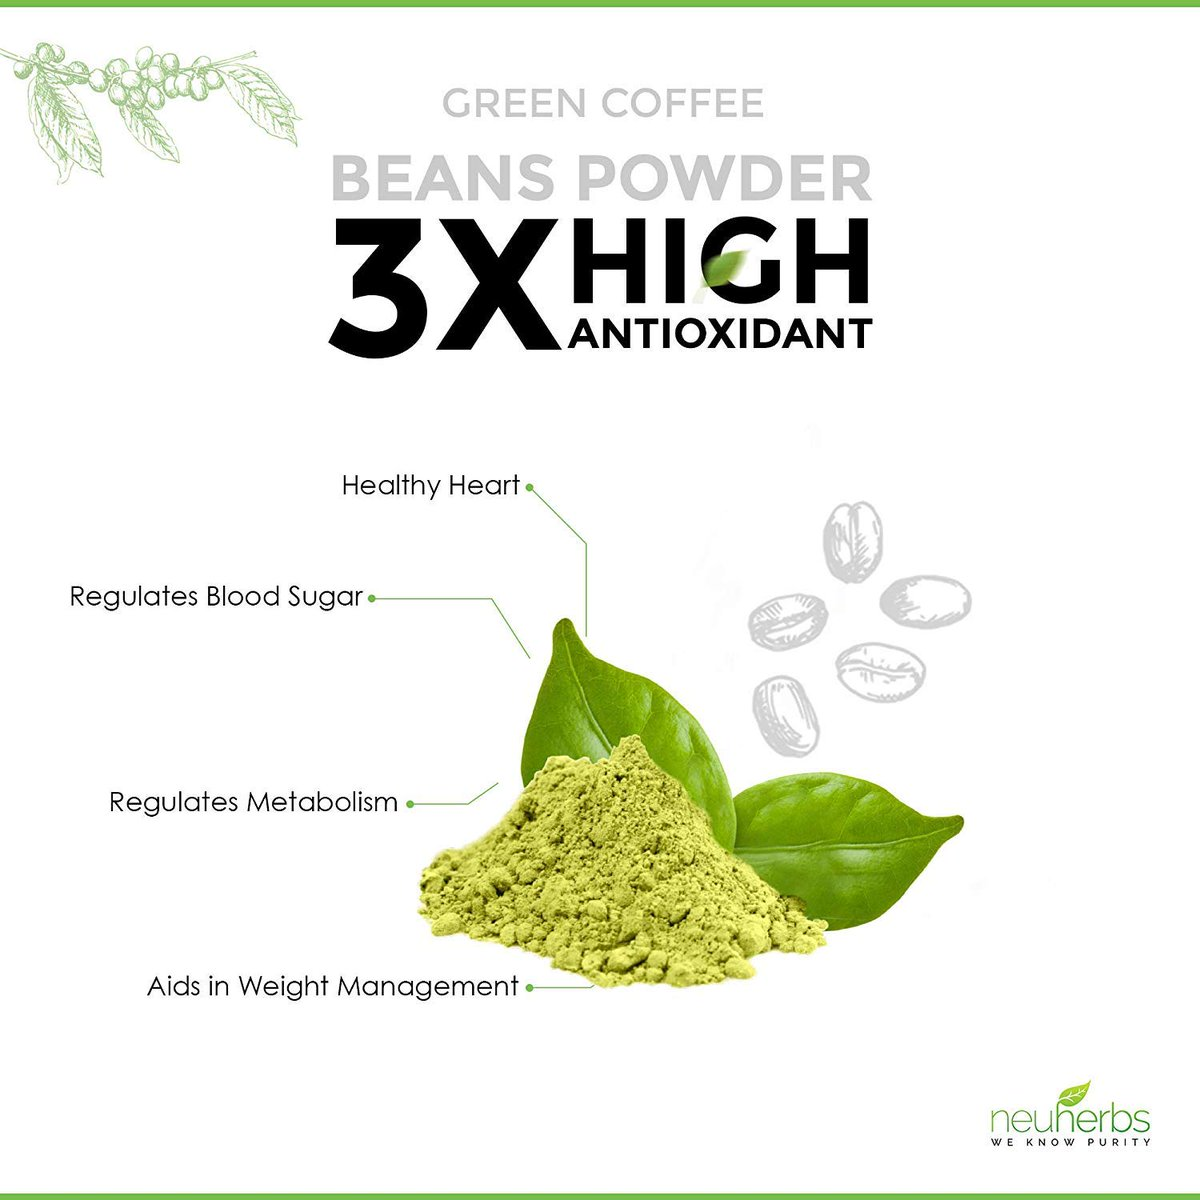 organic Green Coffee Beans powder for Weight Loss ✅For order 🛒 ✅Call or WhatsApp: 03457815090📲 ✅ PRODUCT CODE: FN19823 #coffee #greenbeancoffee #organiccoffee #weightlosscoffee #greencoffee #greencoffeepowder #naturalgreenbeancoffee #healthcare #fitness  #weightlossproducts